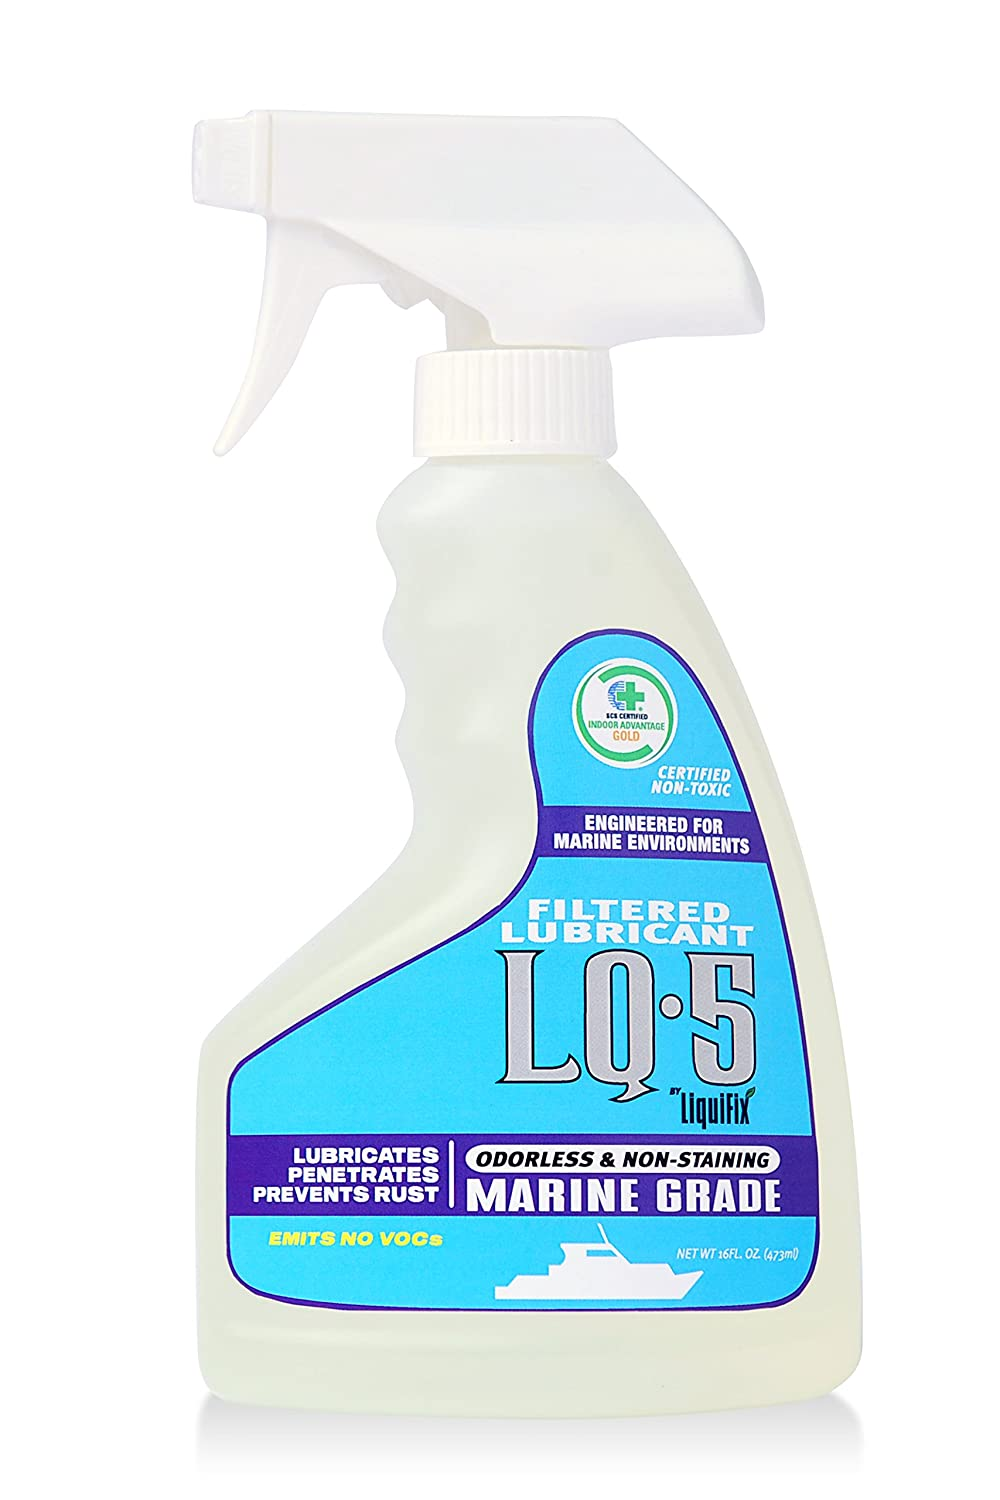 LIQUIFIX Biodegradable desengrasante 16 oz: Amazon.es: Deportes y ...